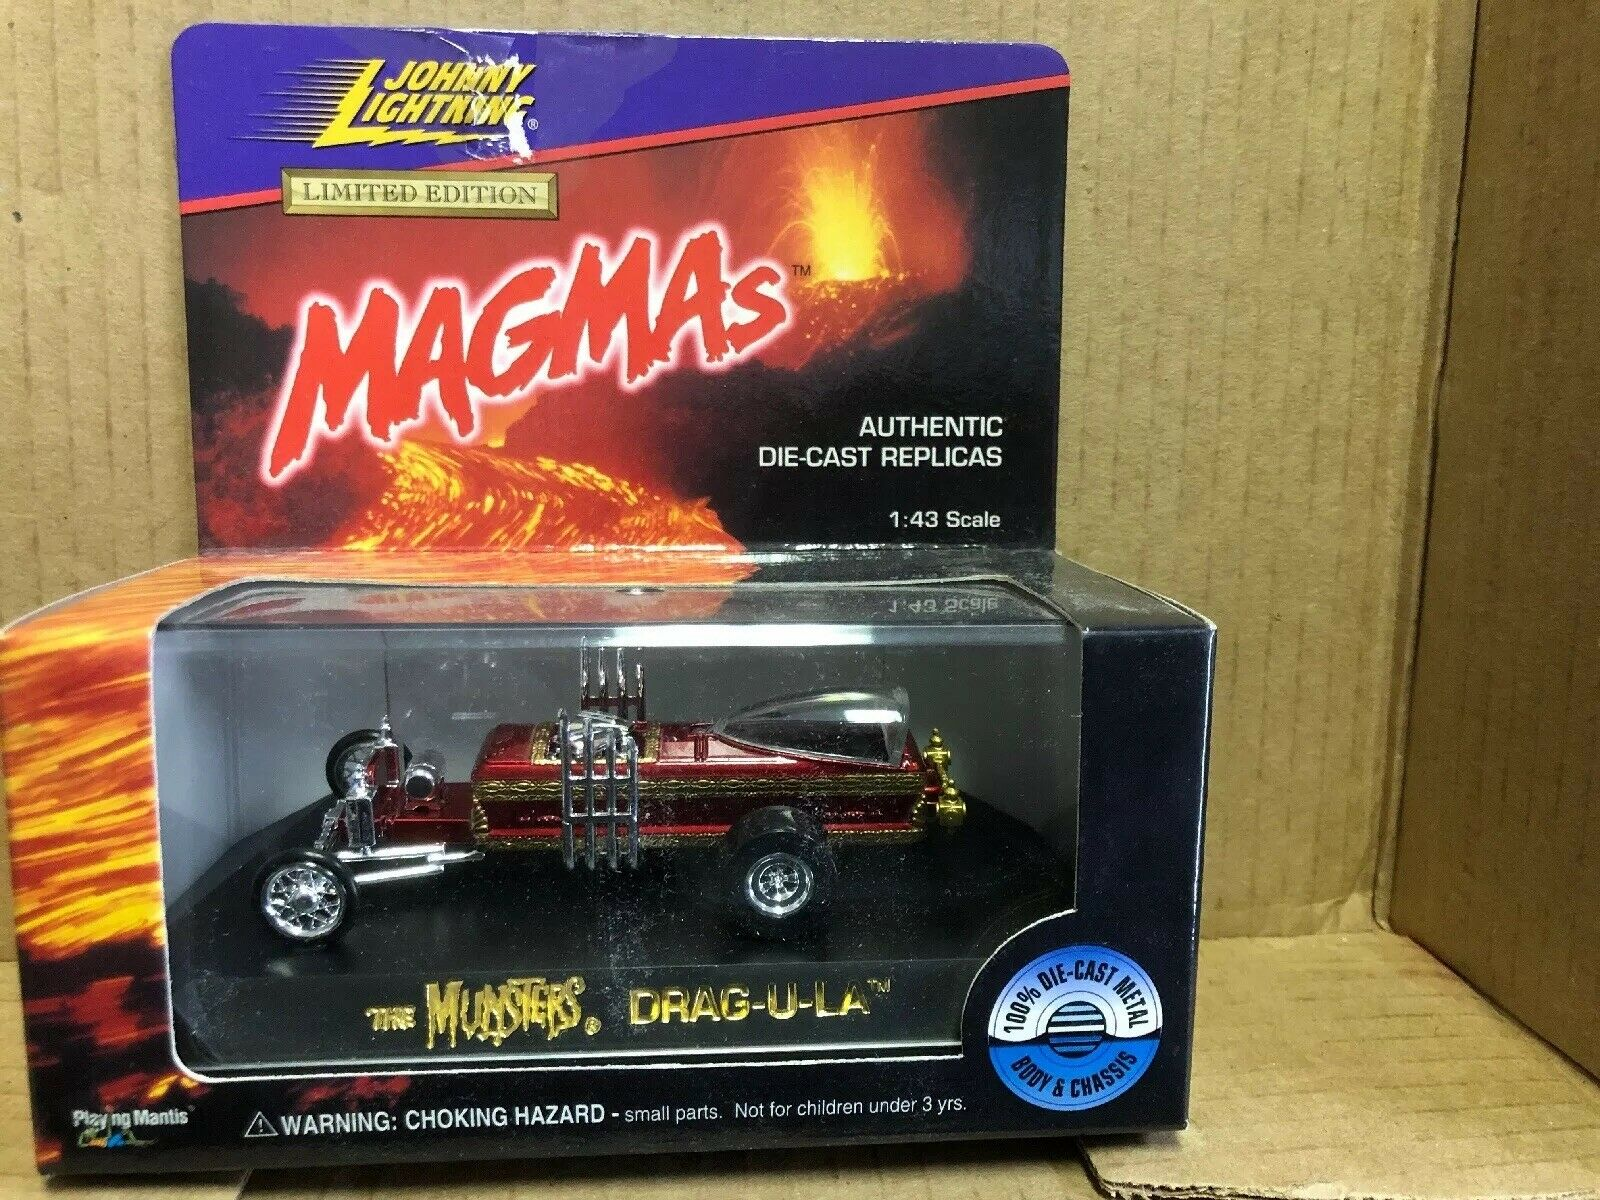 1996 JOHNNY lumièreNING Limited Edition magmas échelle  1 43 Rouge Munsters Drag-U-La  vente discount